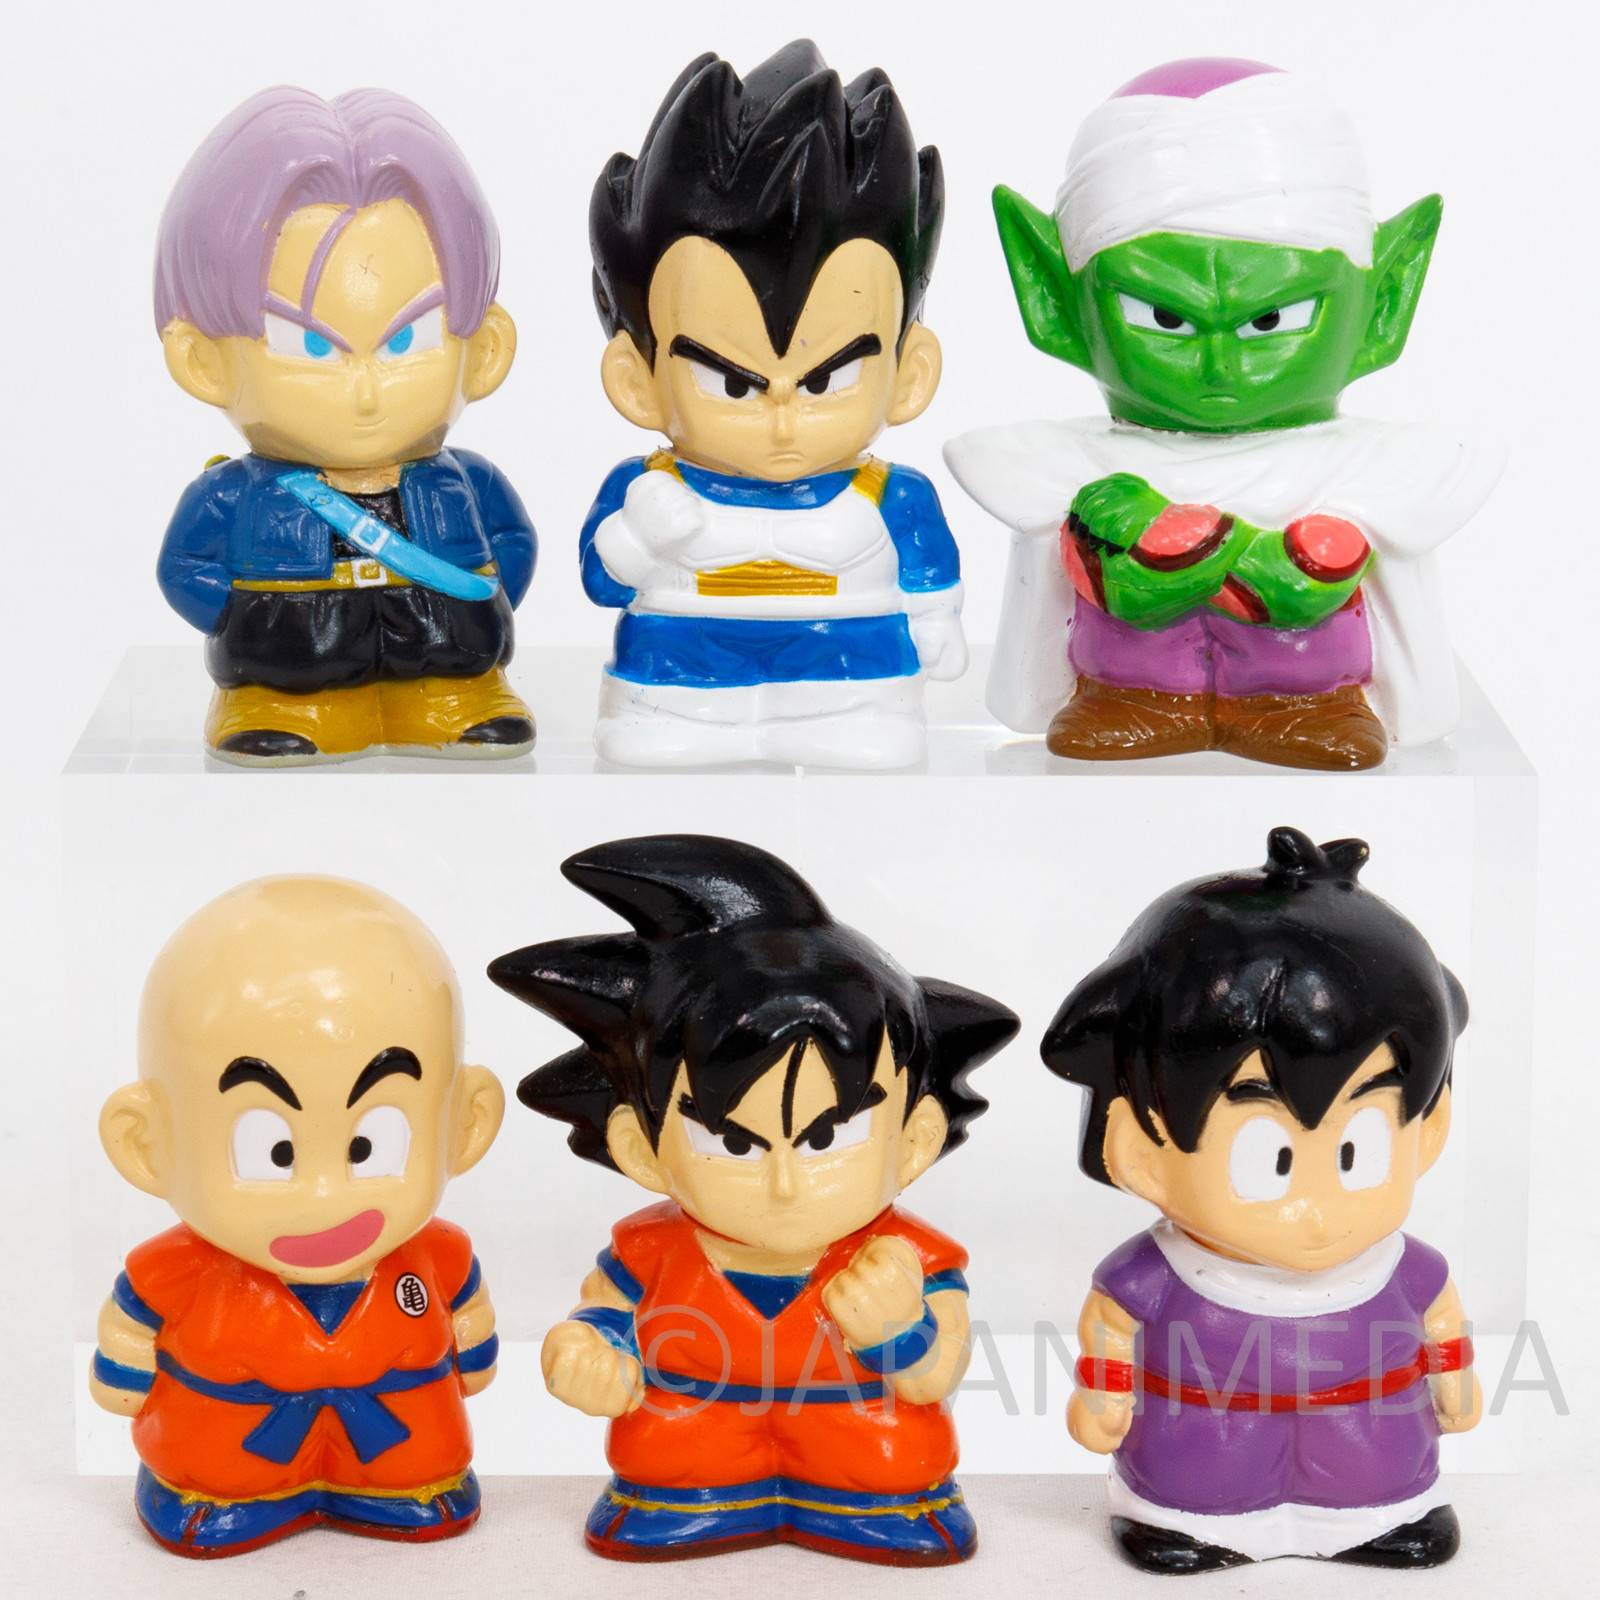 Dragon Ball Soft Vinyl Figure 6pc Set Gokou Gohan Piccolo Vegeta Trunks Krillin